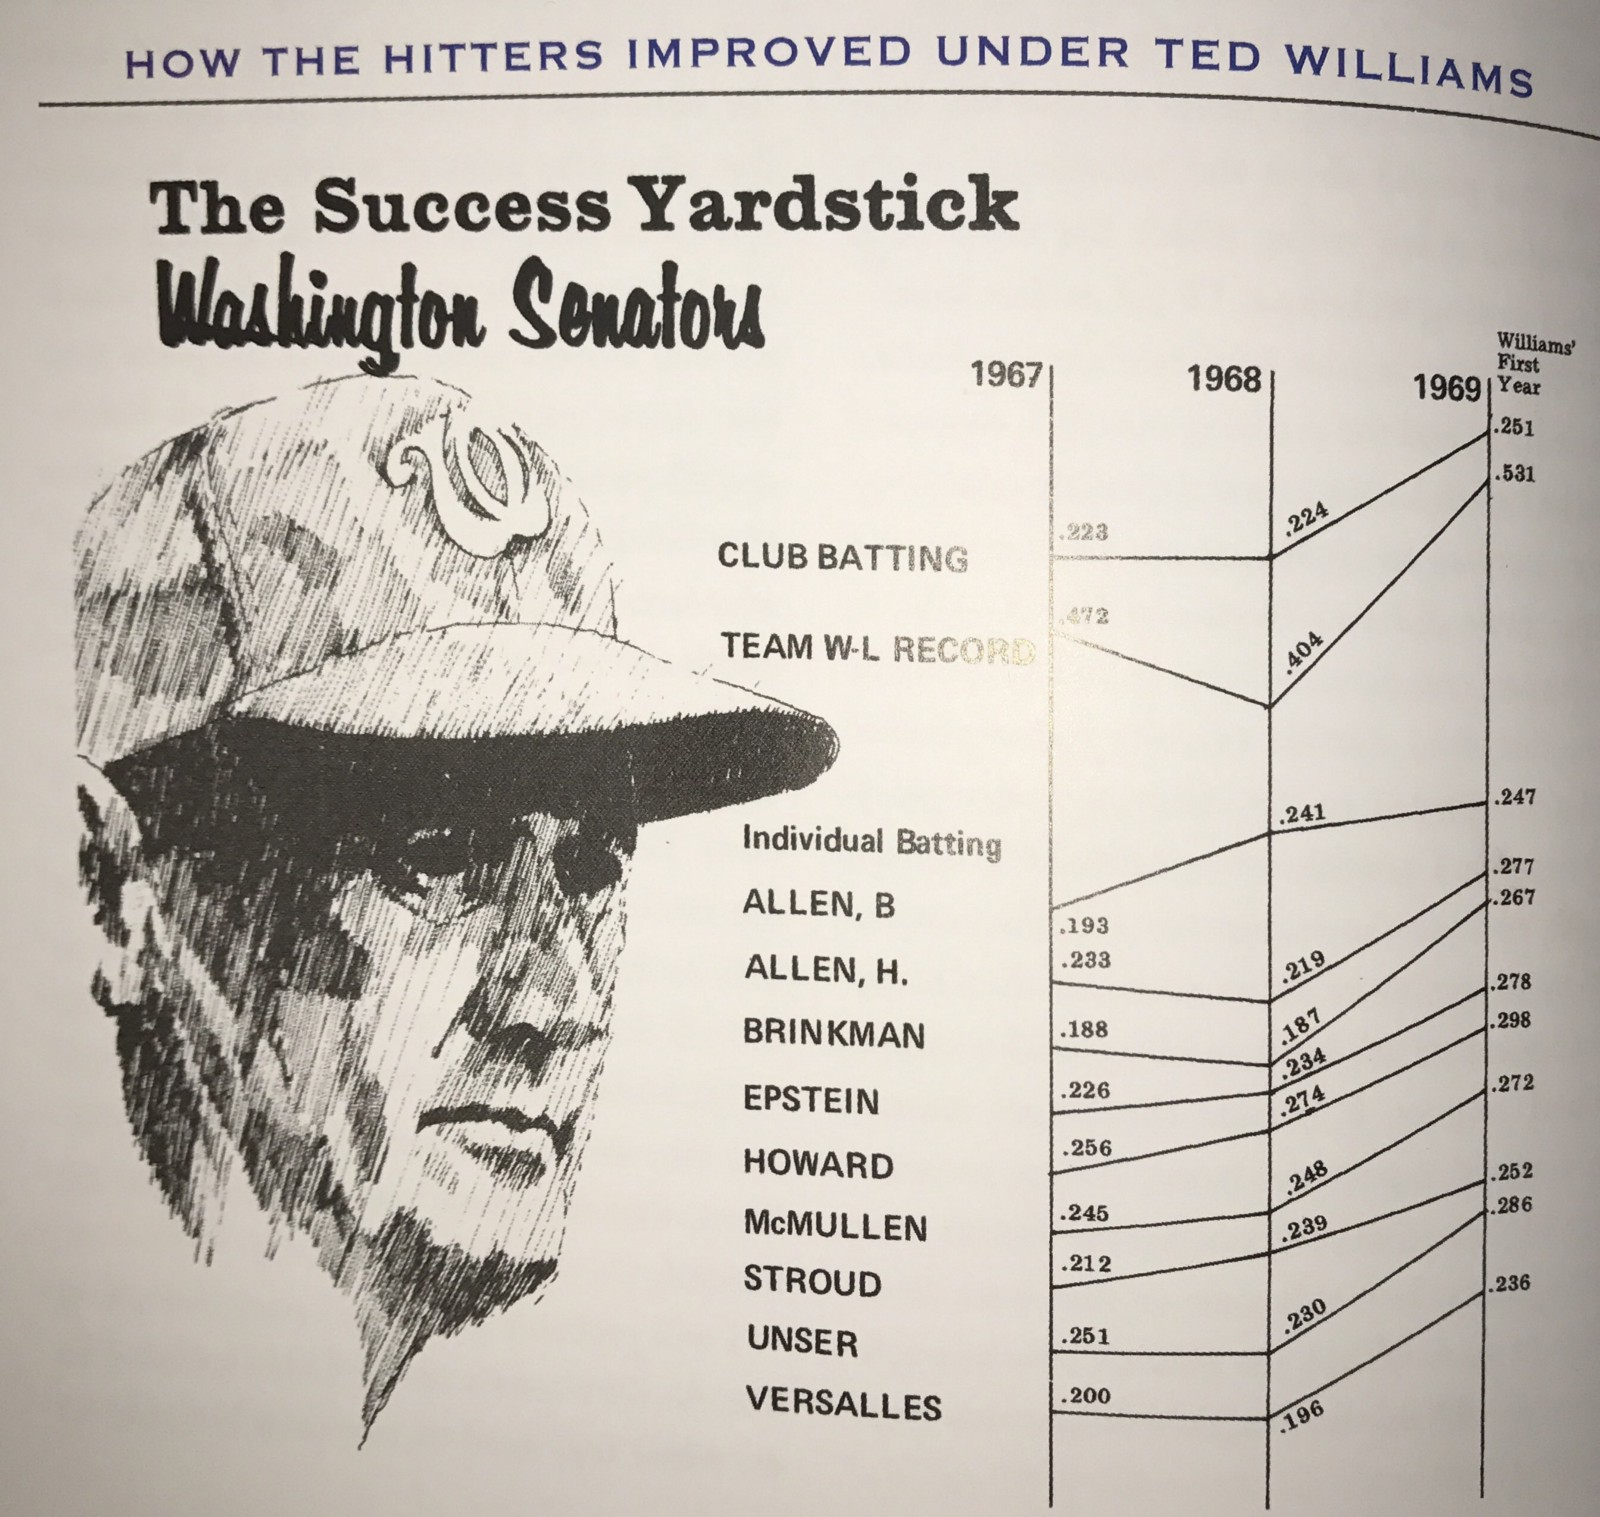 ted williams speech analysis On september 28, 1960—a day that will live forever in the hearts of fans—red sox slugger ted williams stepped up to the plate for his last at-bat in fenway park.